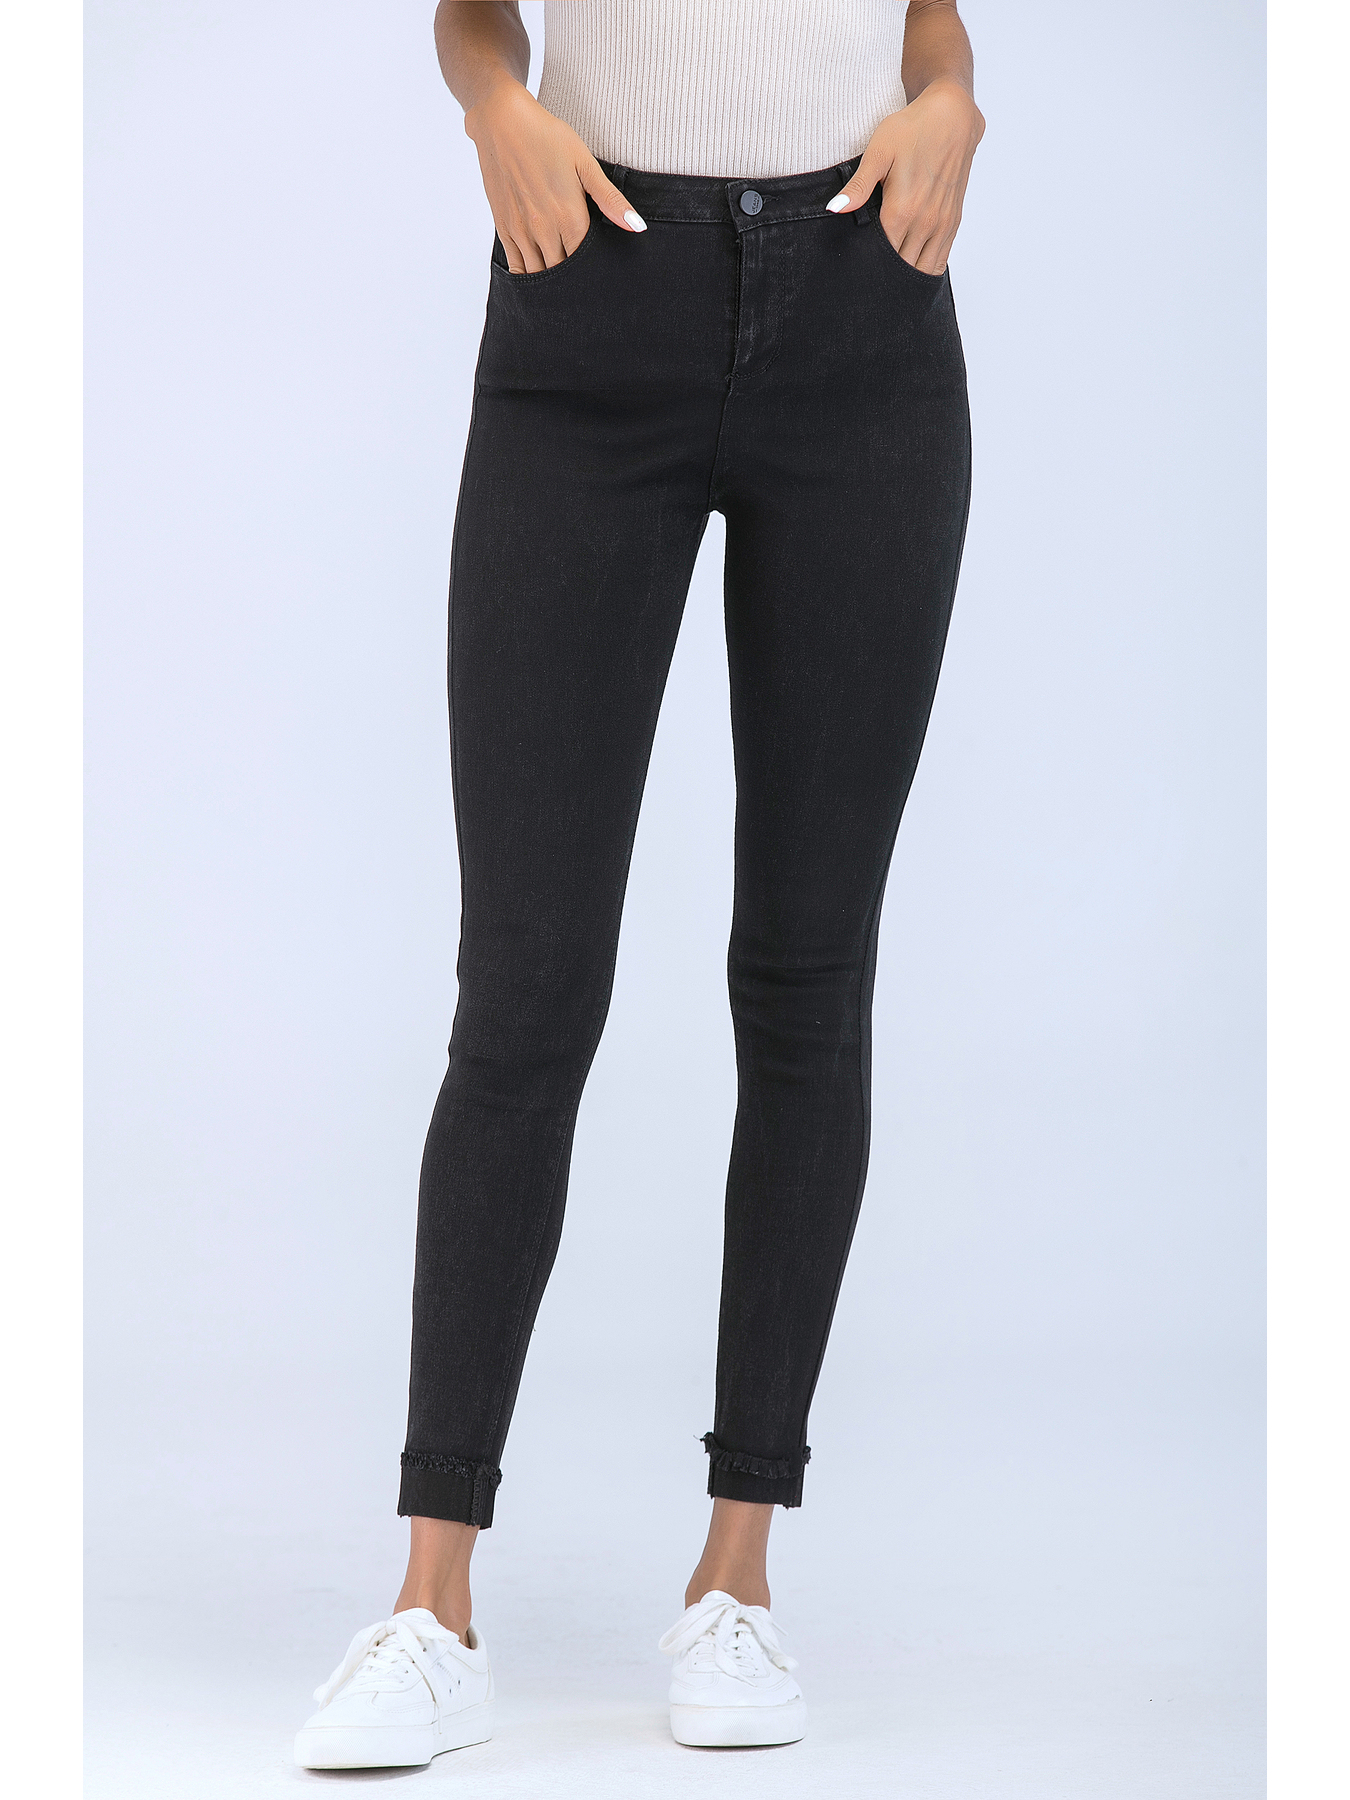 Womens Black Stretch Jeans Skinny Fit 2019 Katomi High Waist Casual Style